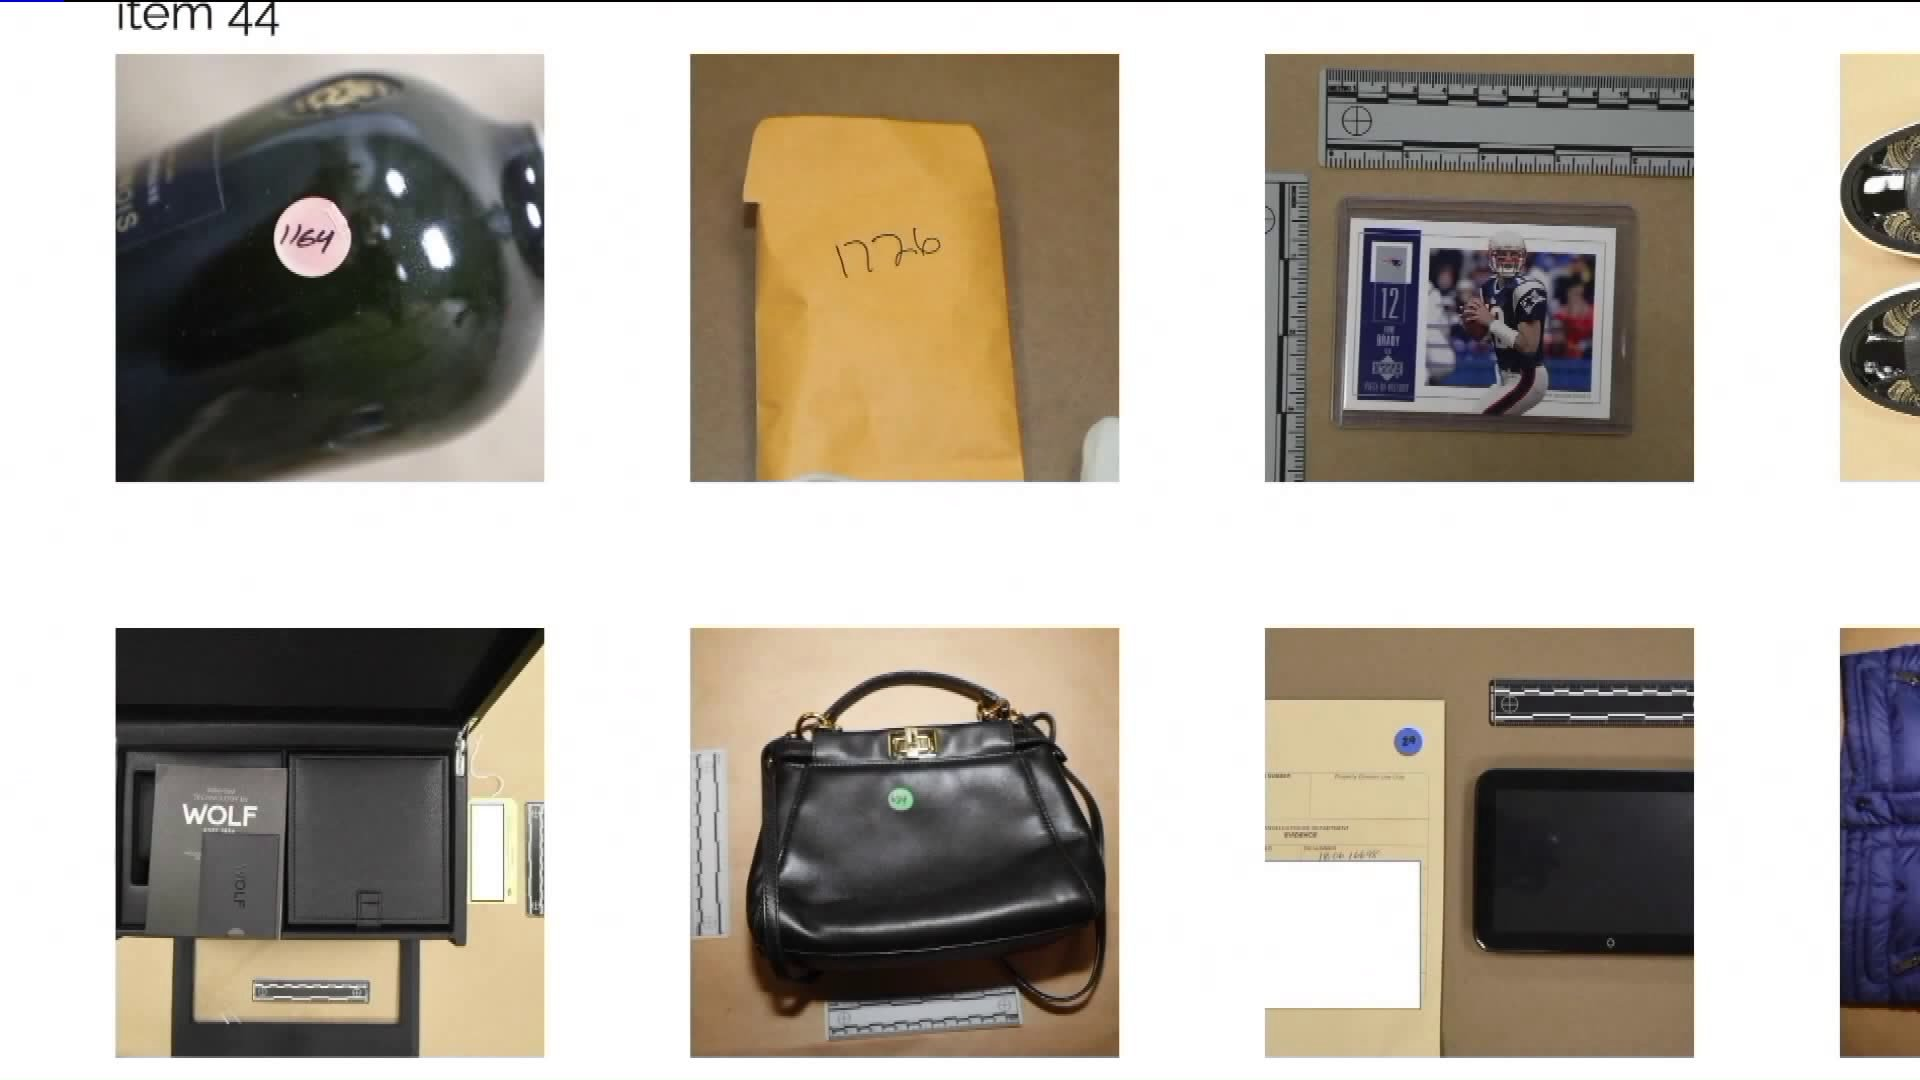 Valuables recovered as part of an investigation into burglaries targeting celebrities' homes are displayed during a Los Angeles Police Department press conference in January of 2019. (Credit: KTLA)